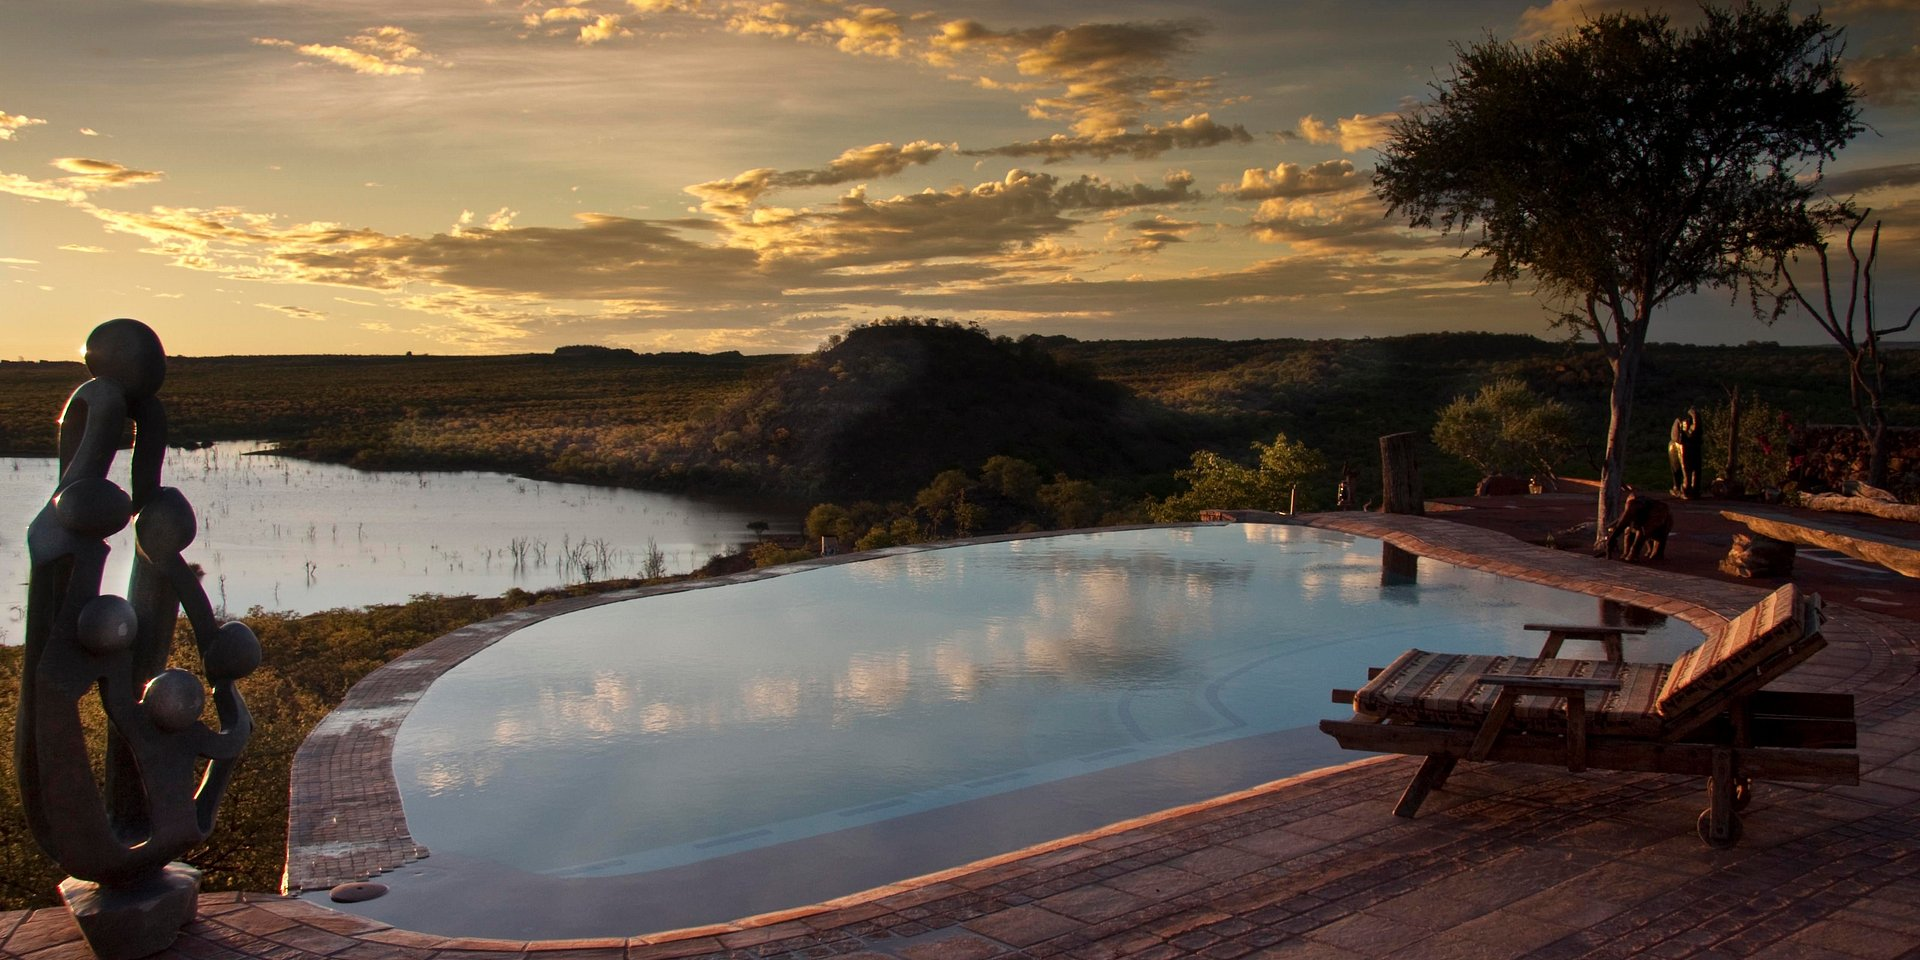 Coldwell Banker Realty Announces Listing of Mapungubwe Private Nature Reserve in South Africa for $58 Million